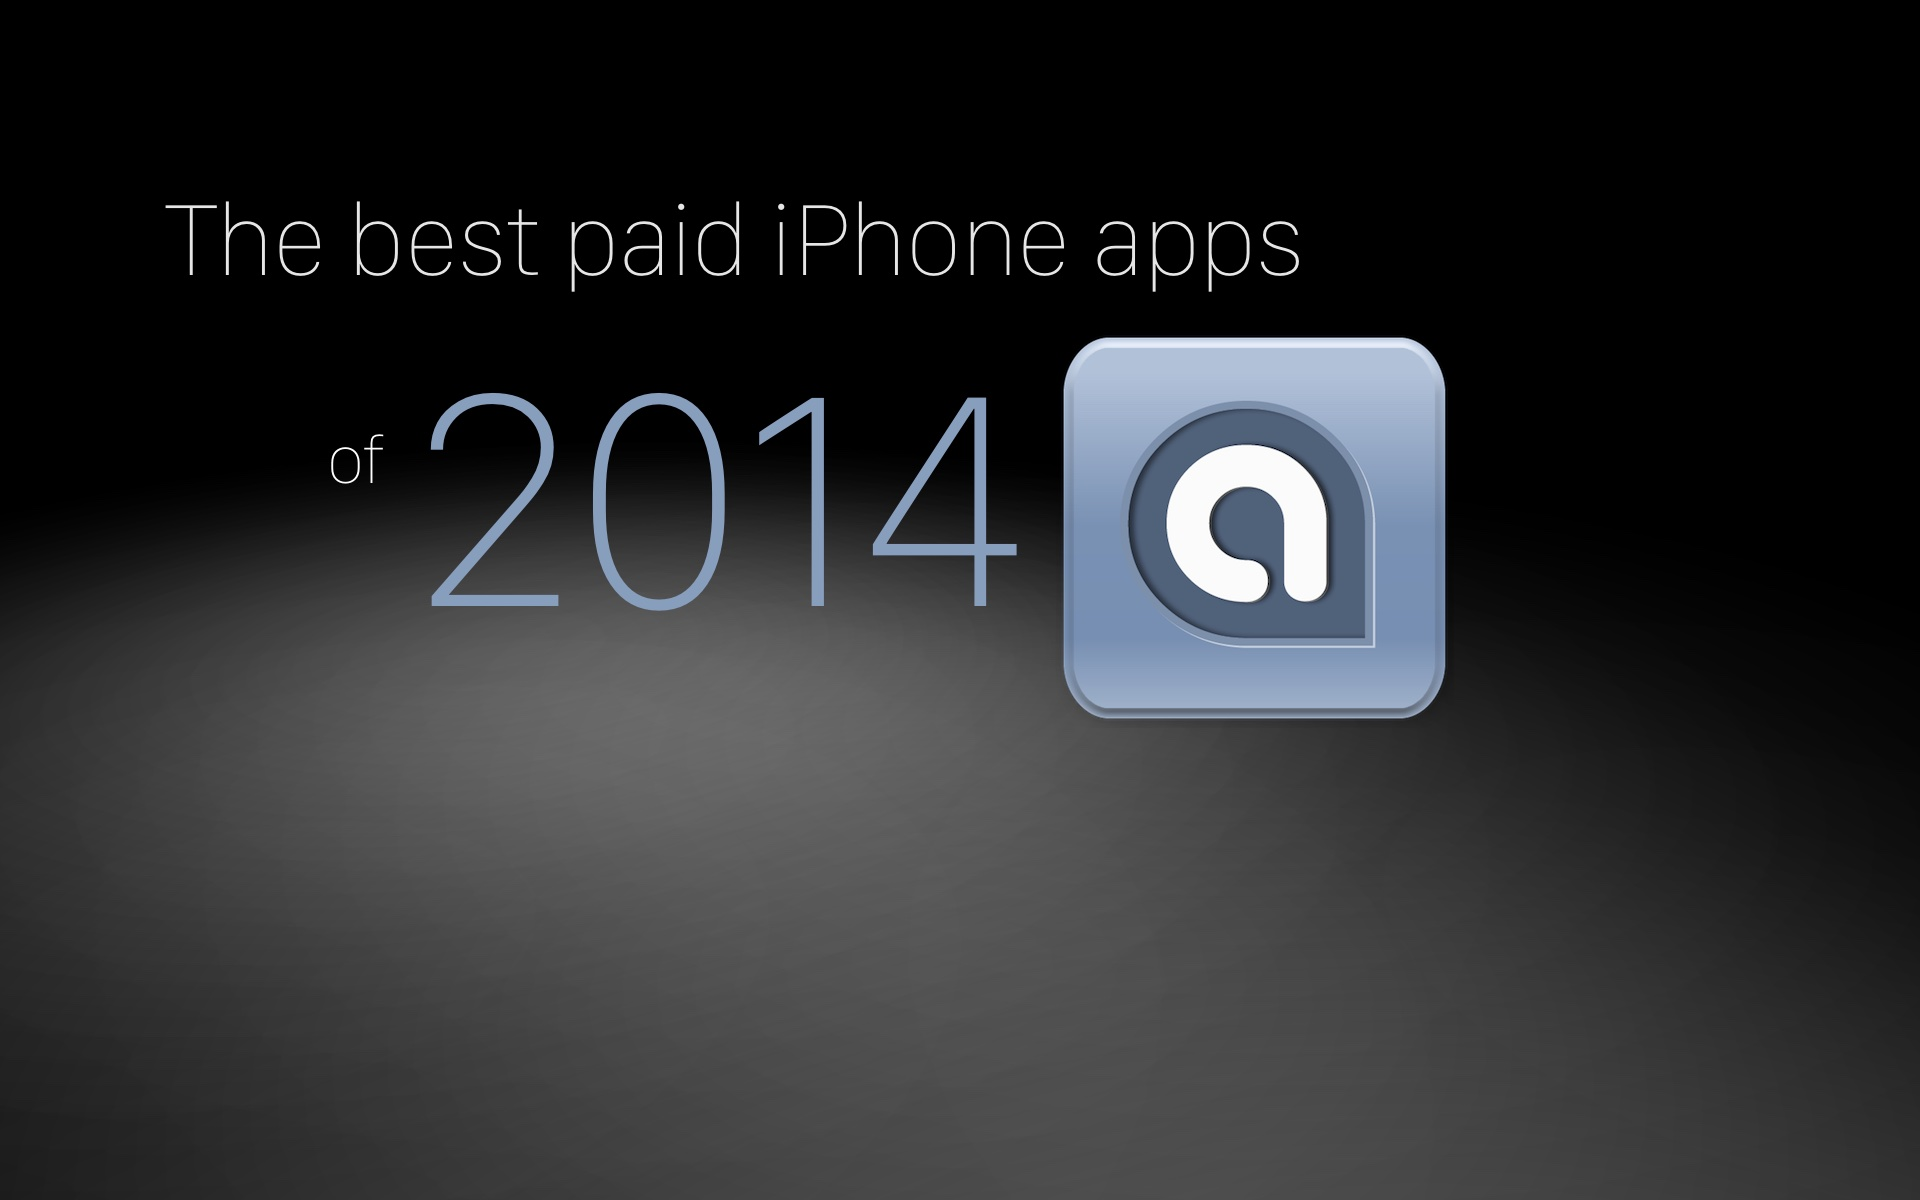 AppAdvice's top 10 best paid iPhone apps of 2014